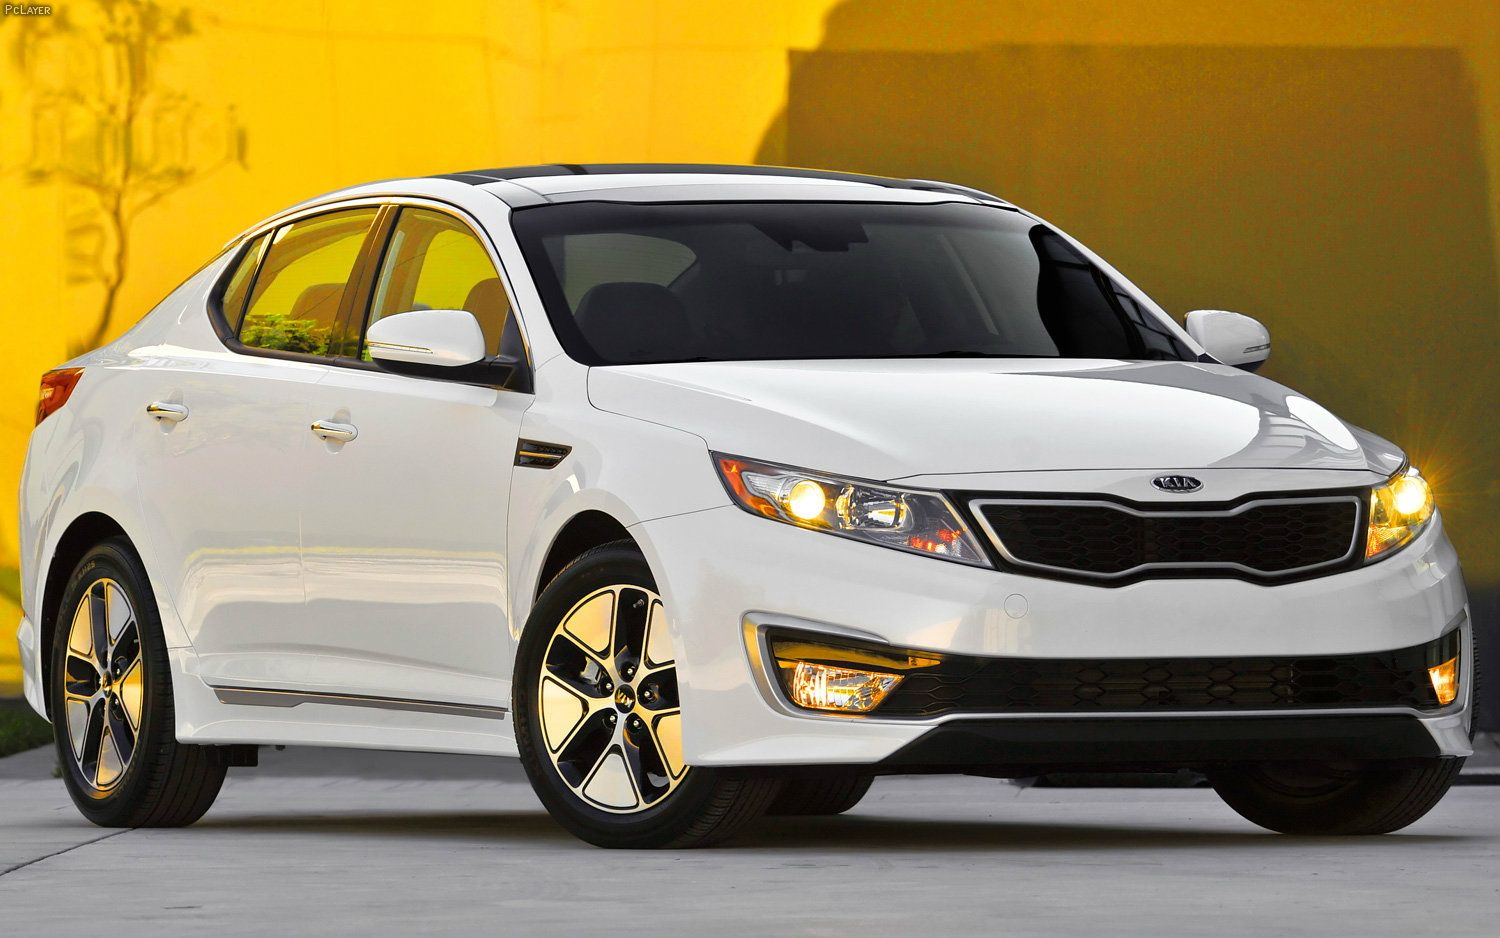 kia cars Kia Optima Hybrid Car 2013 2014 Price In